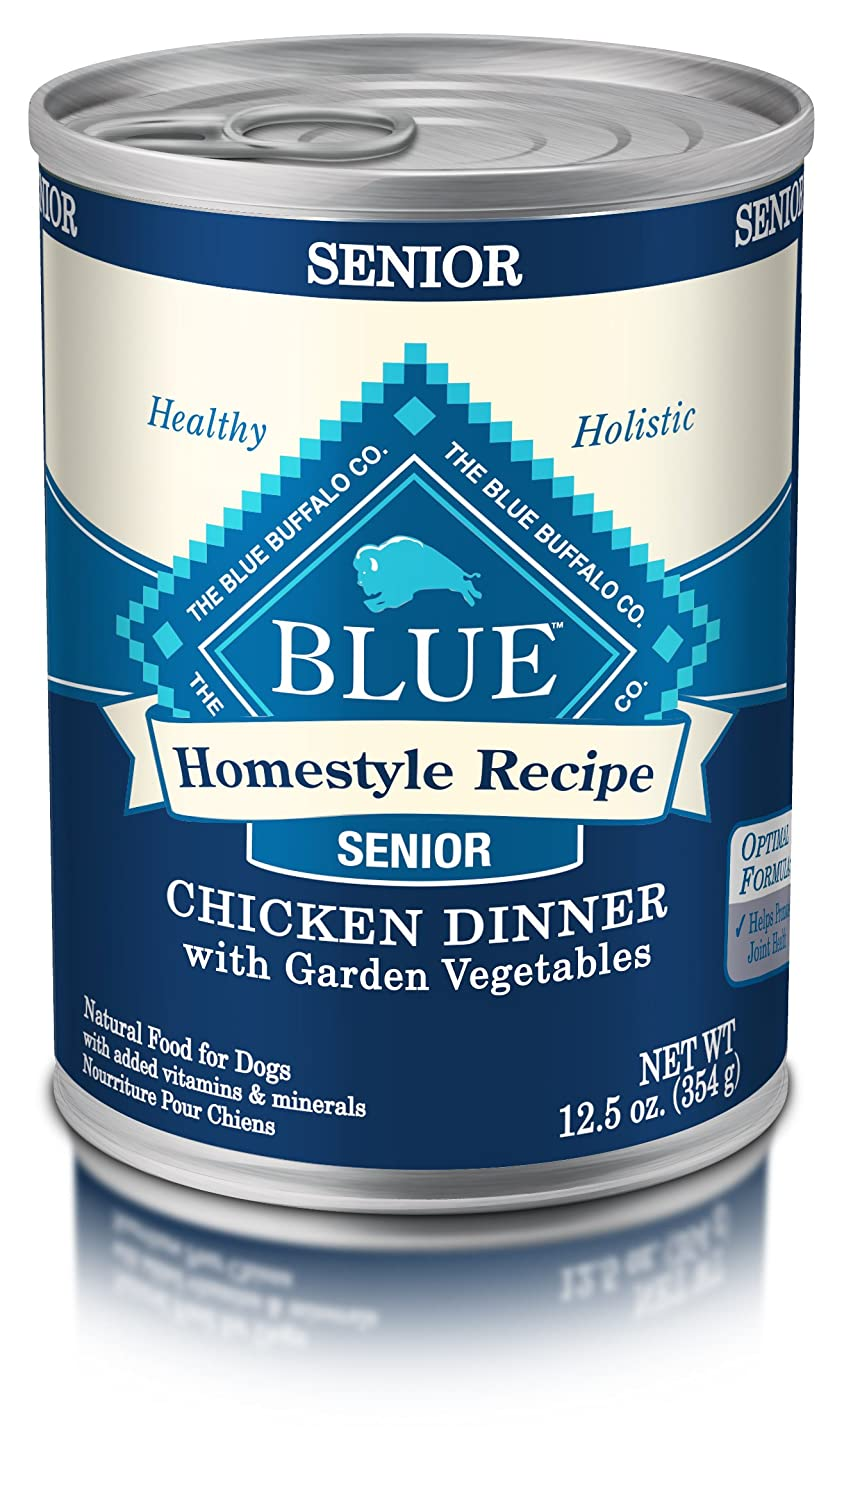 Blue Buffalo Homestyle and Family Favorites Recipes